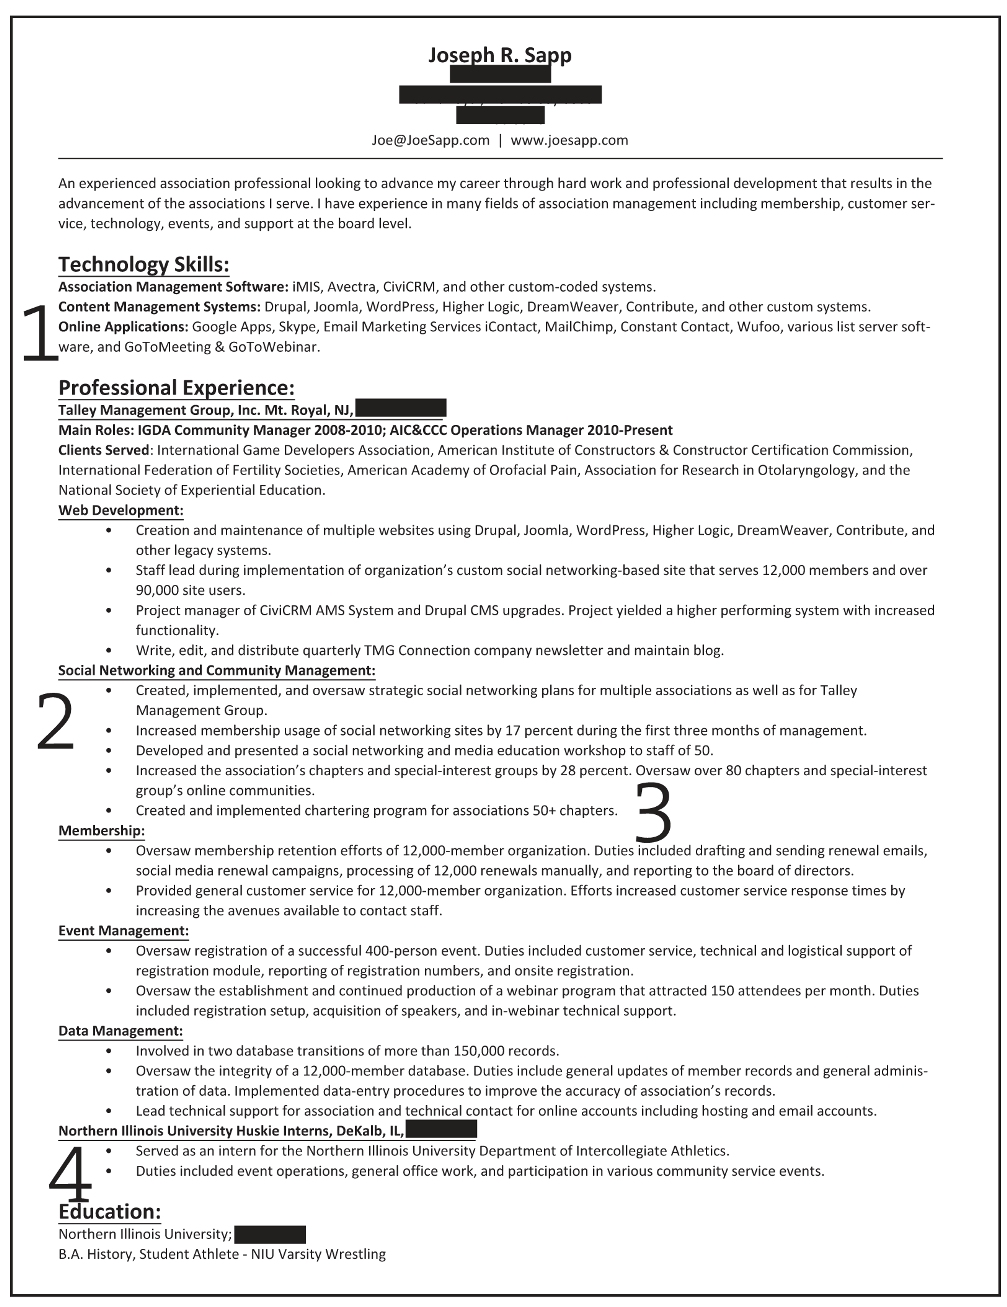 Resumes Example Professional Summary Of Resume Before Revisions Professional Summary for Resume professional with technology skills